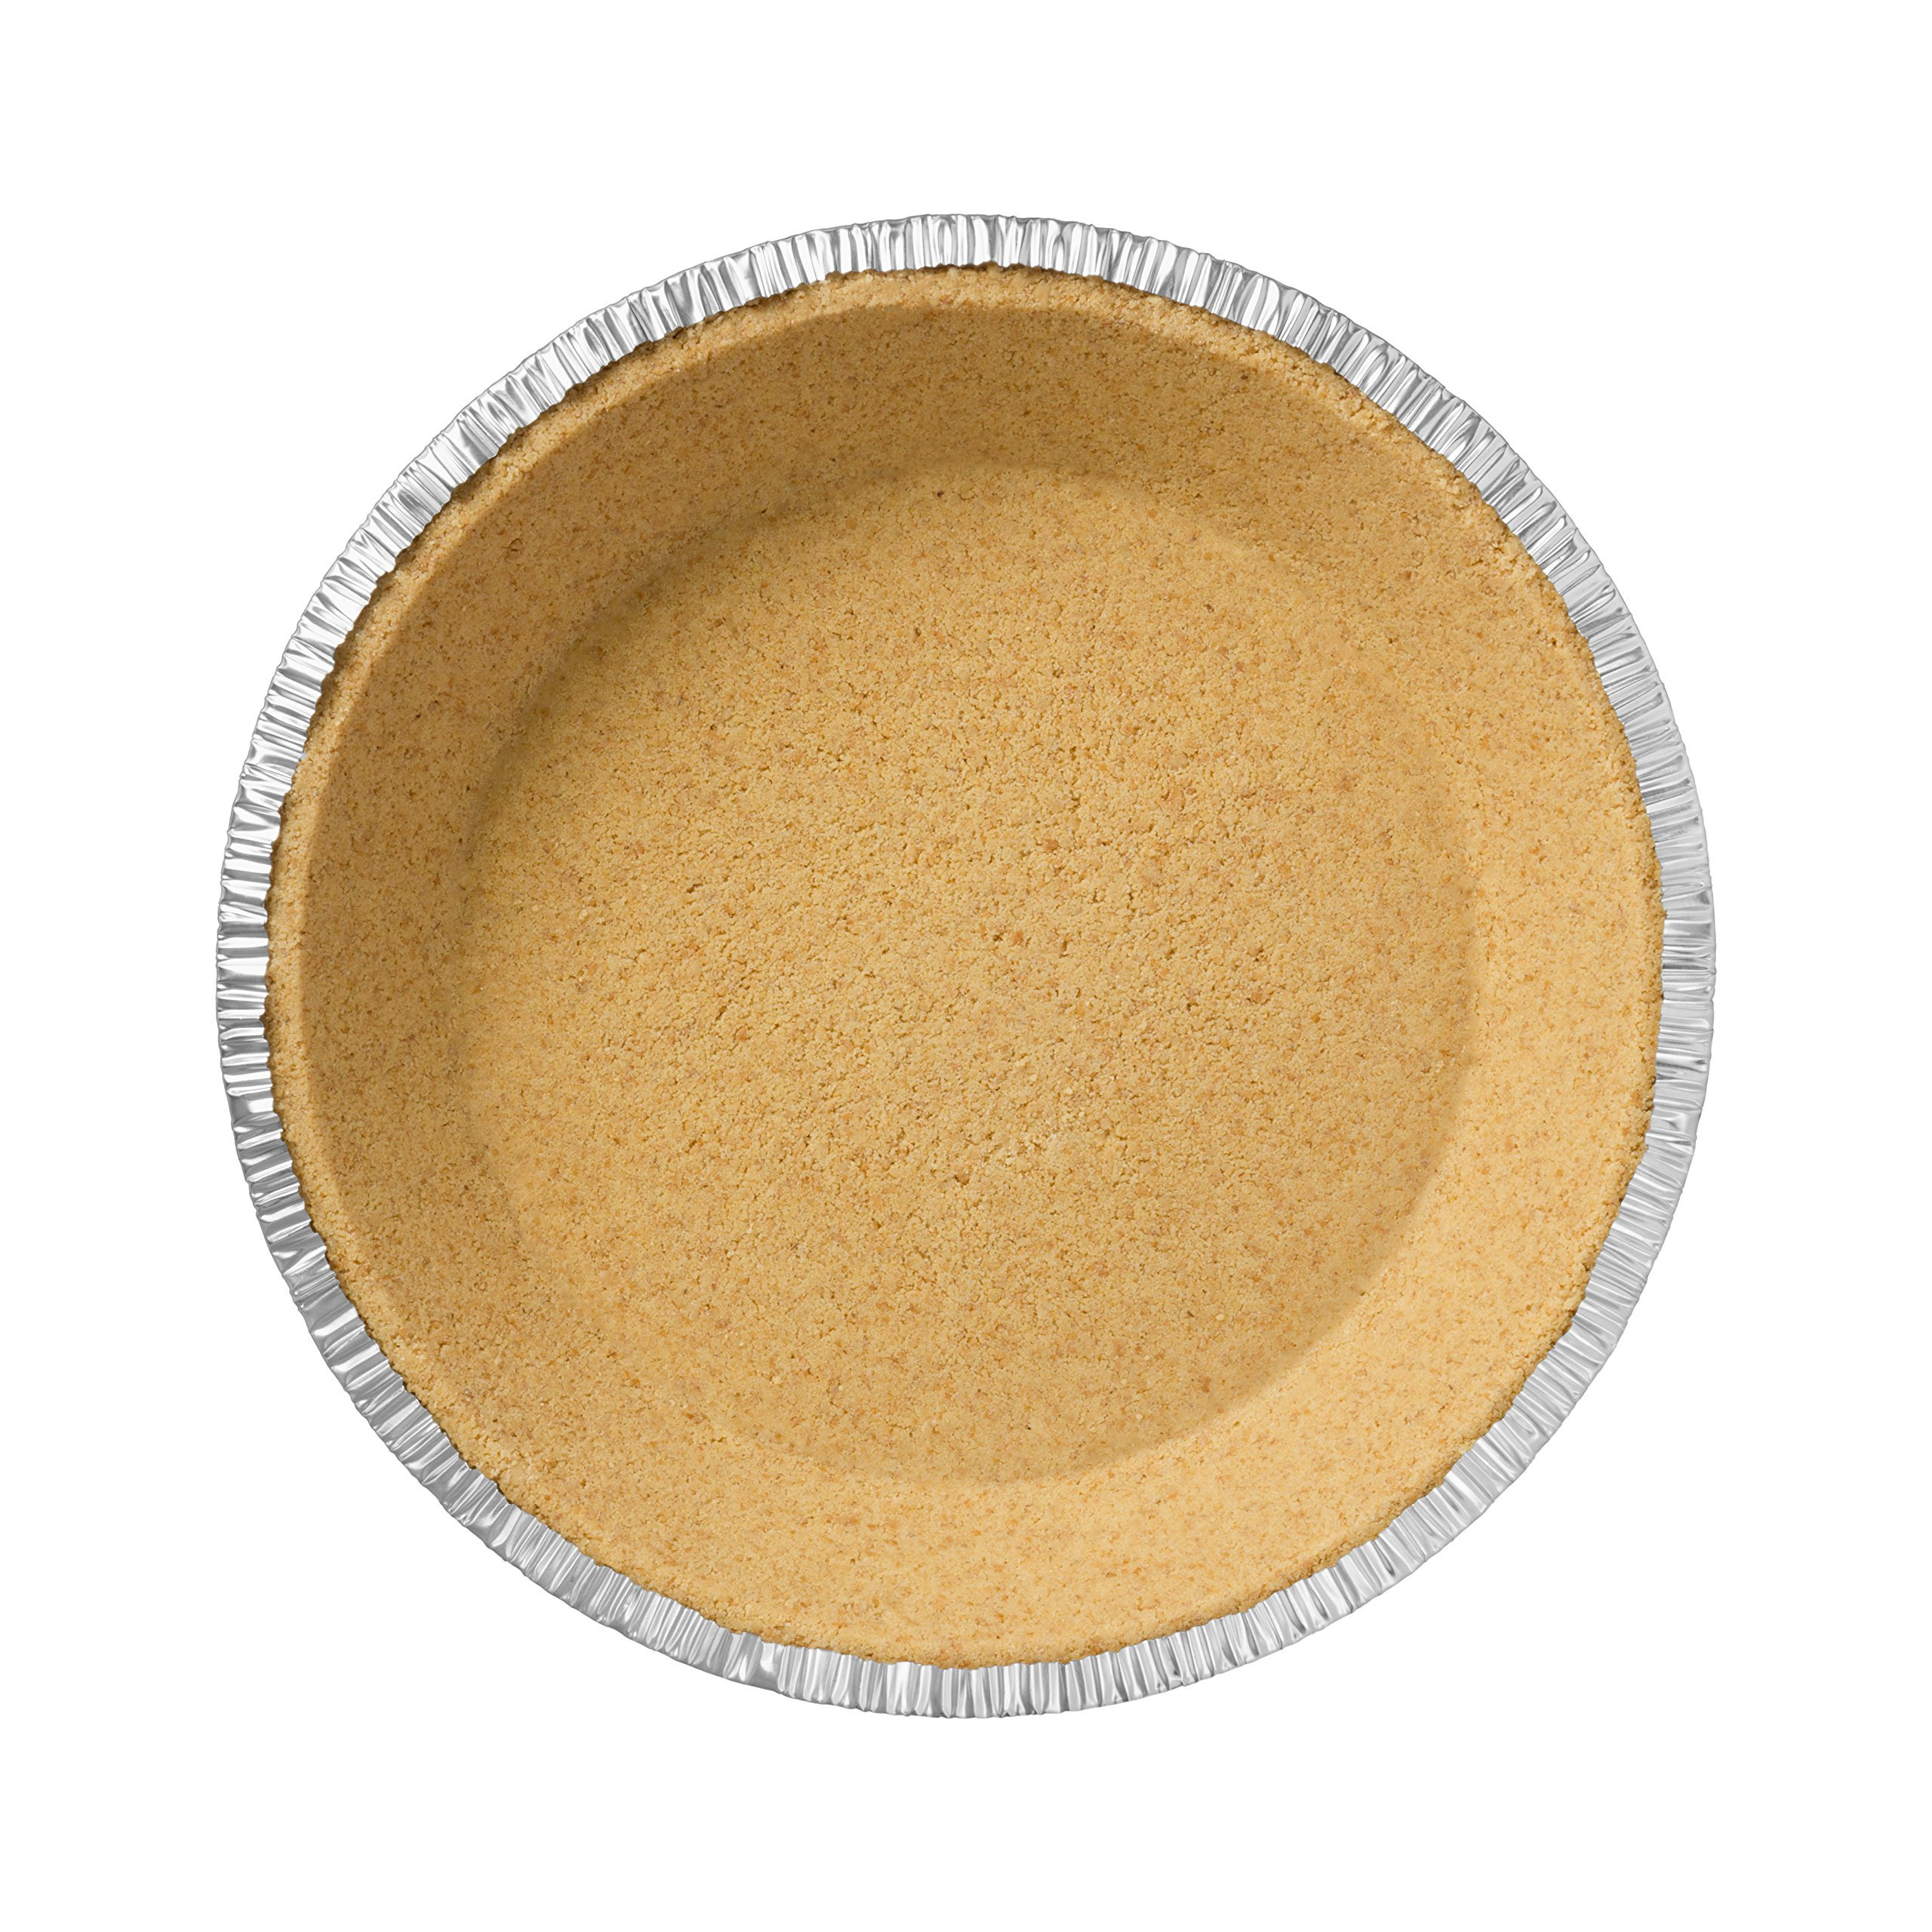 Premium 9'' Aluminum Foil Pie Pans. Disposable Tin Plates for Pies Tart Quiche. (Pack of 50) by Gypsy's Cart (Image #5)